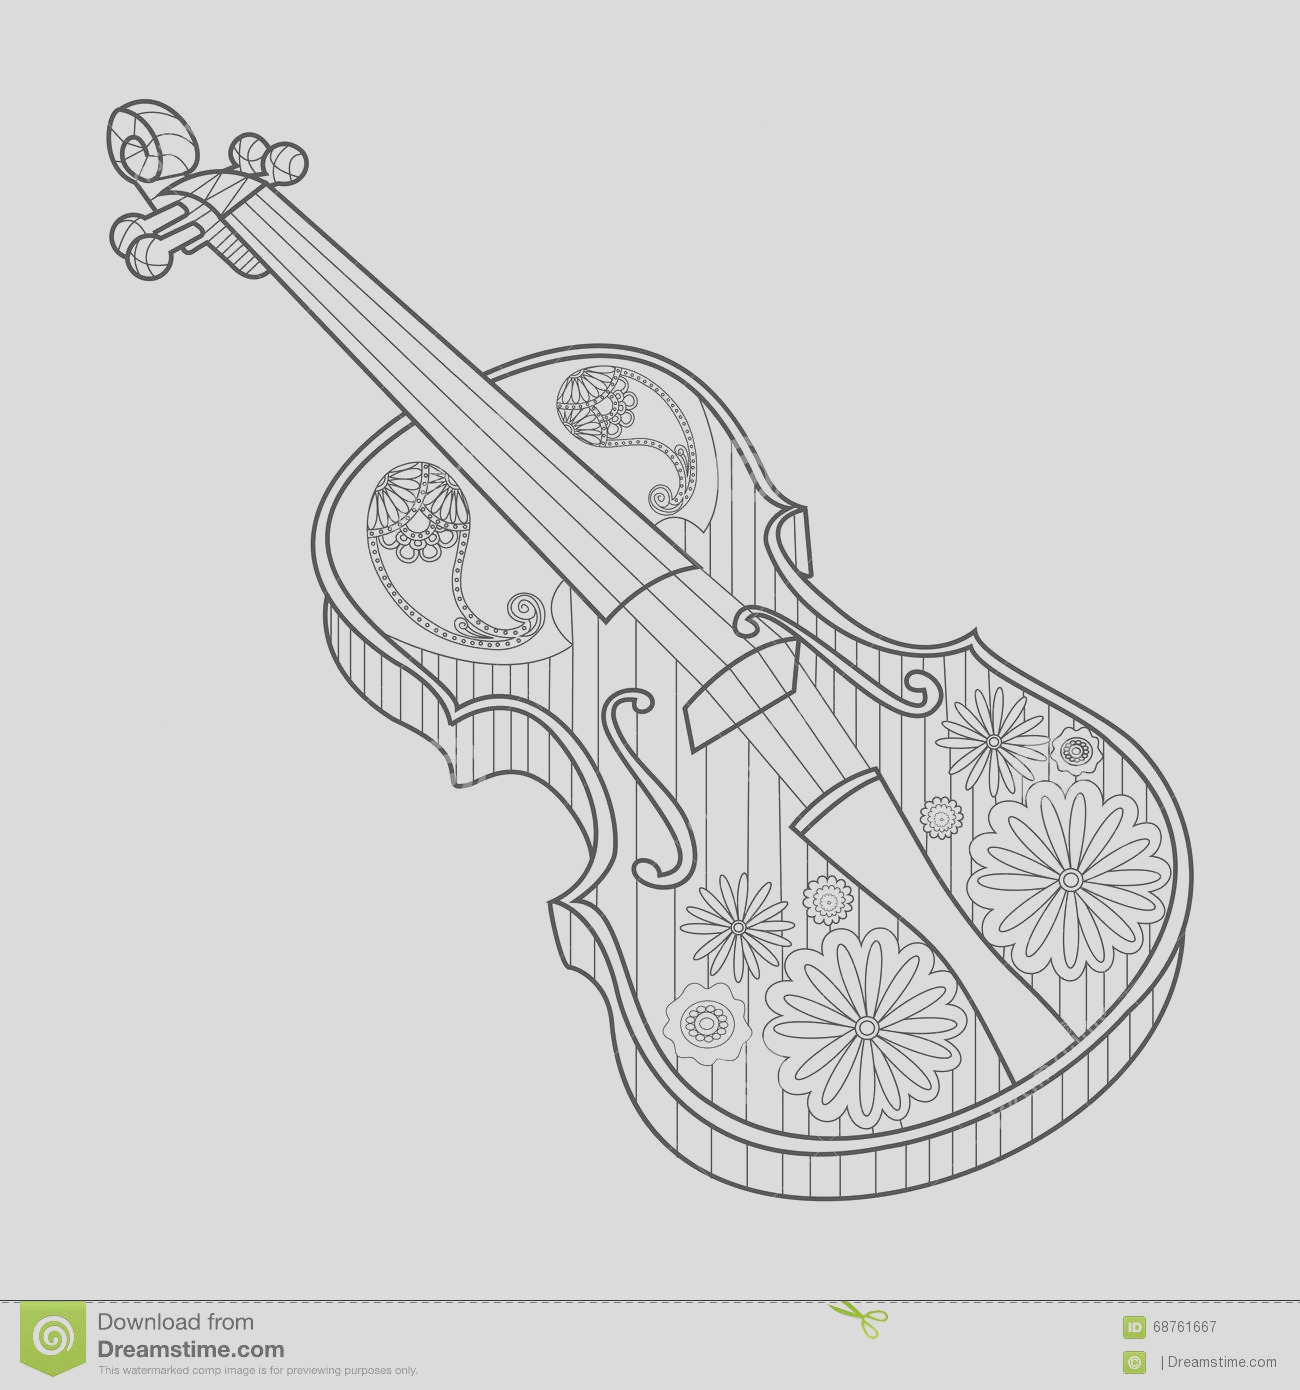 stock illustration coloring adults violin vector illustration anti stress book zentangle style image